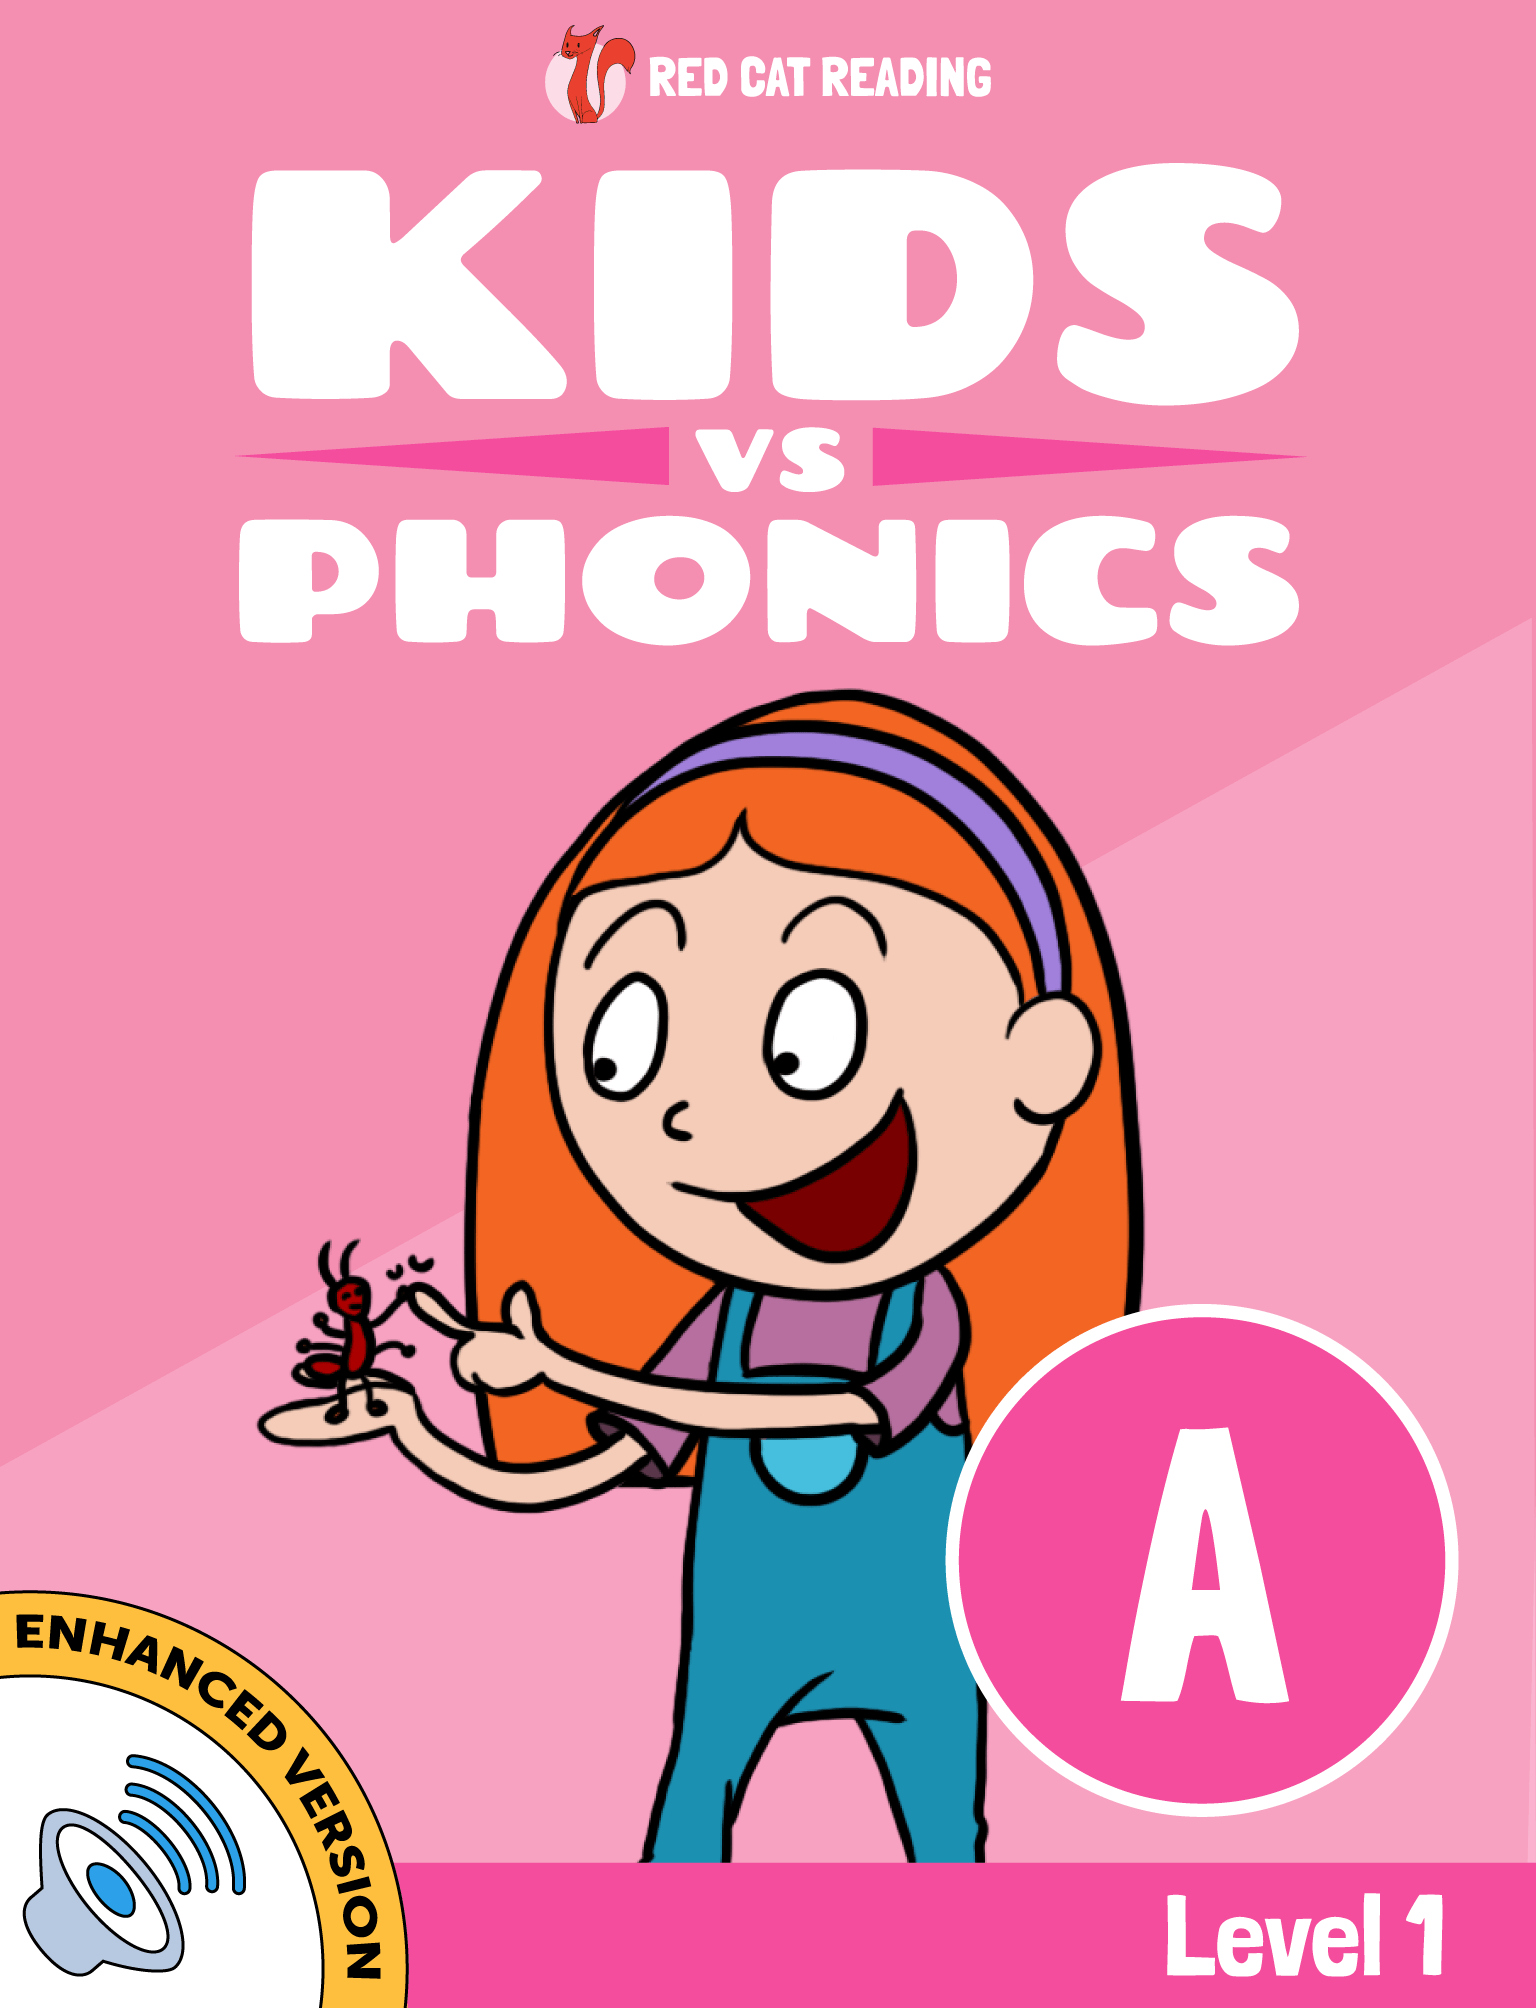 Red Cat Reading Kids vs Phonics Phonic A Sound Level 1 Learn to Read